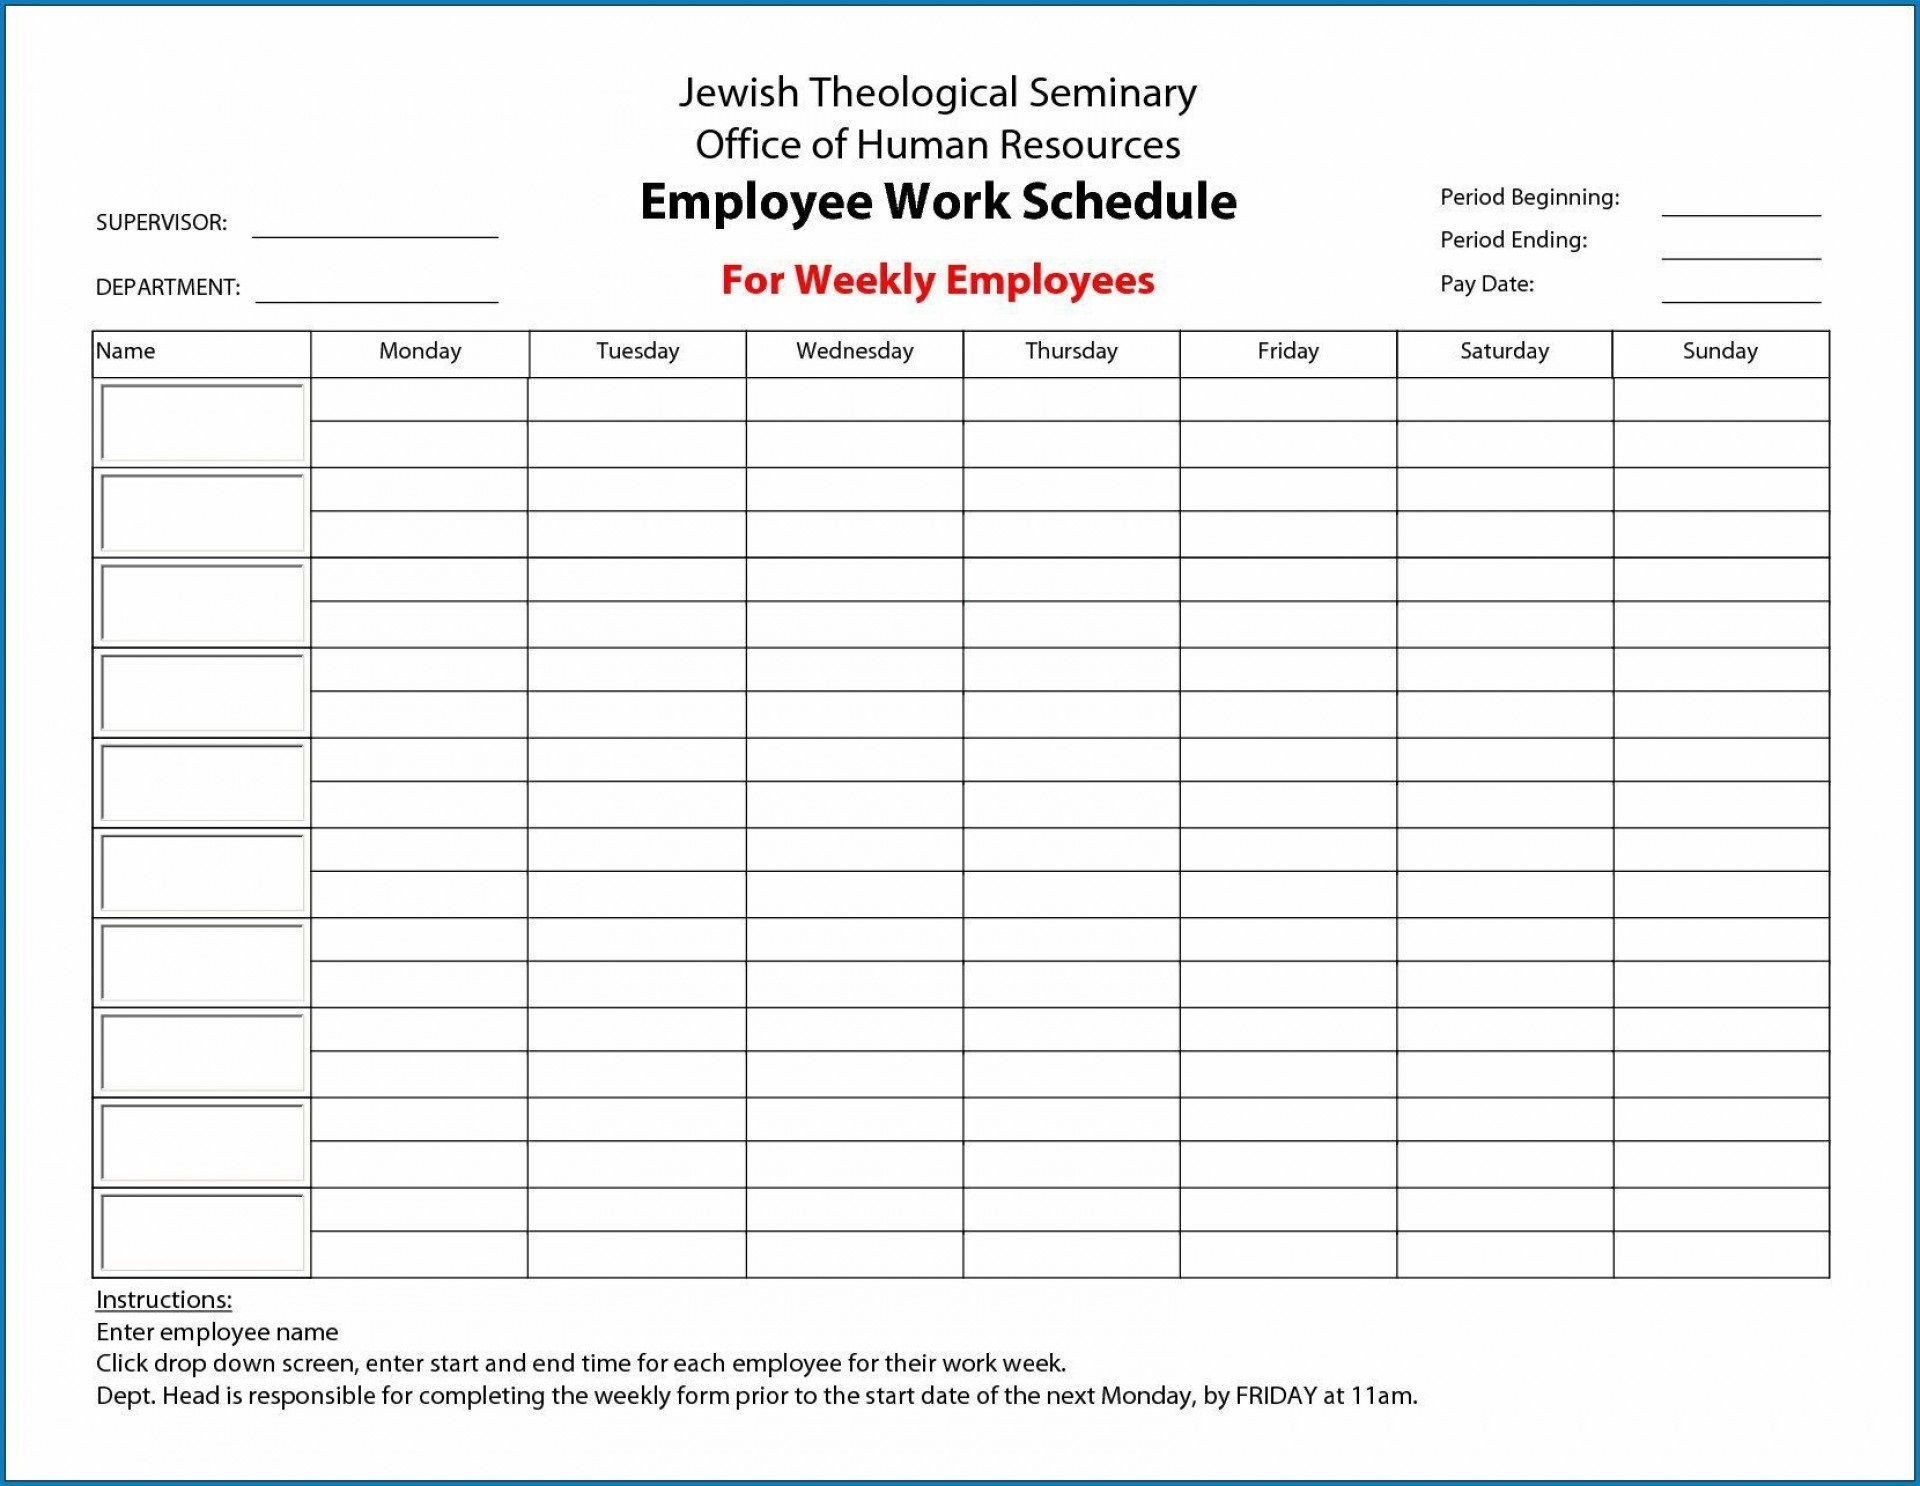 005 Unforgettable Free Employee Work Schedule Template Highest Quality  Templates Monthly Excel Weekly Pdf1920